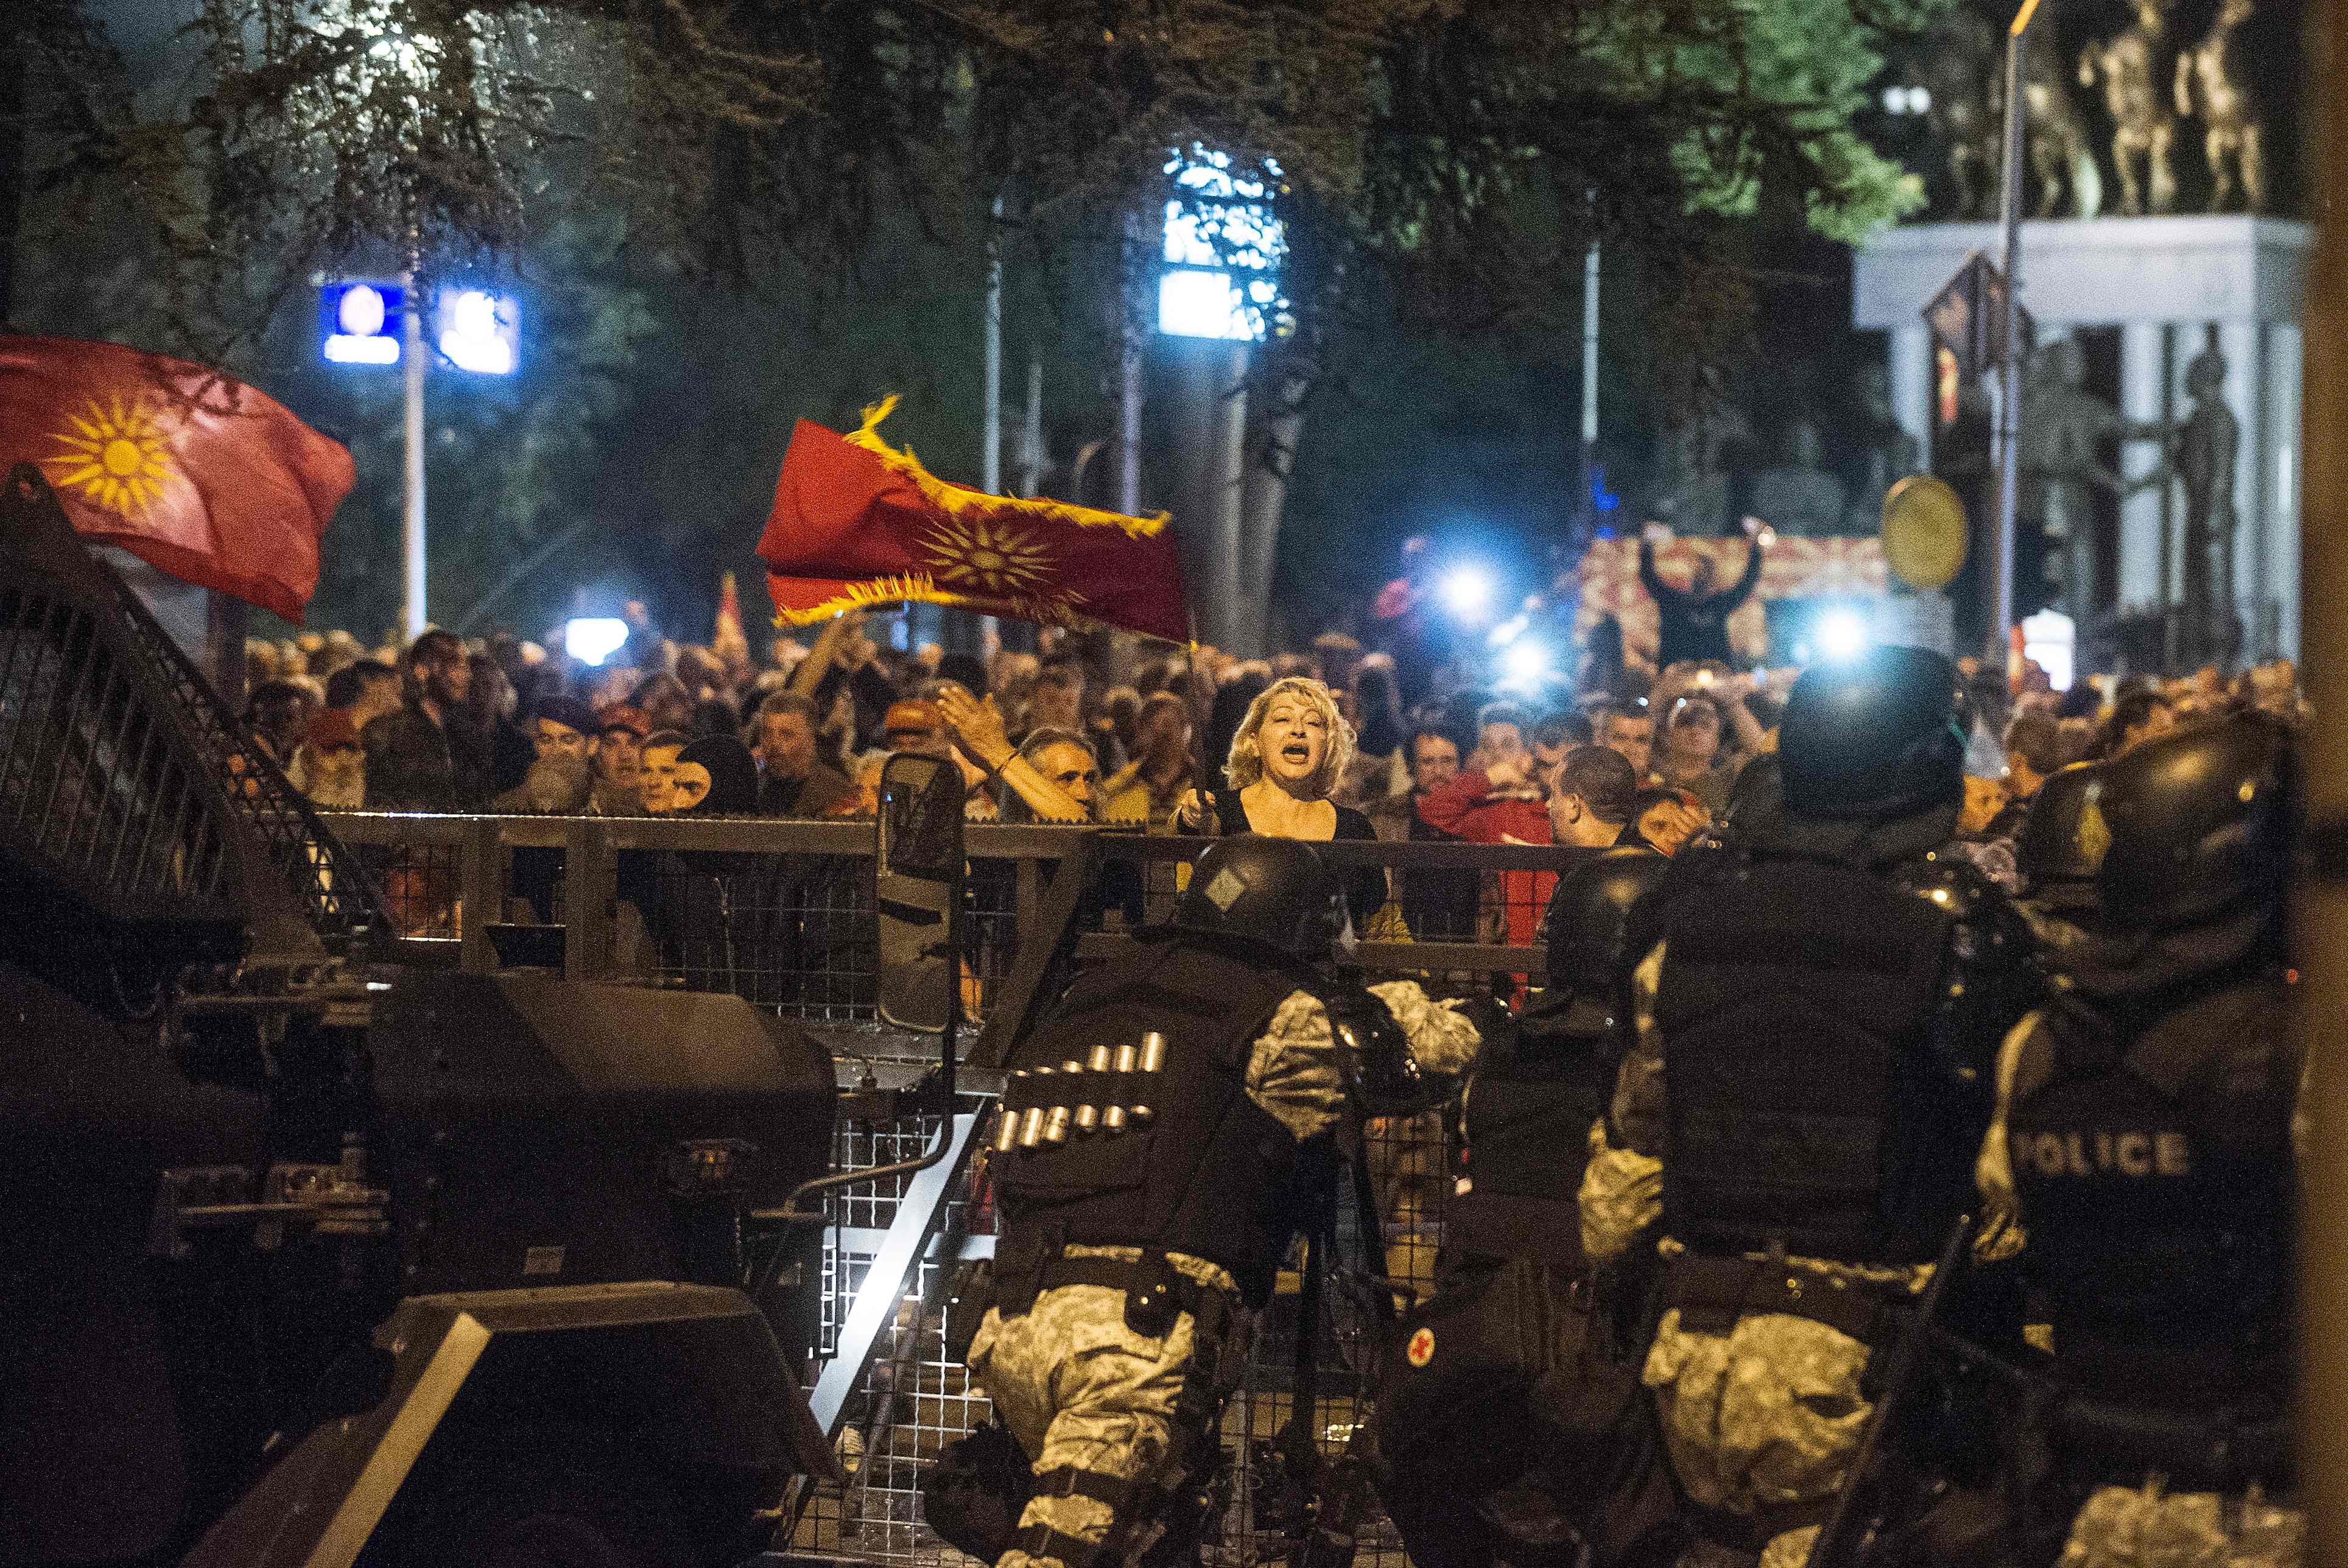 A woman waves a flag in front of police blocking the entrance to Macedonia's parliament as protesters gather after the governing Social Democrats and ethnic Albanian parties voted to elect an Albanian as parliament speaker in Skopje on April 27, 2017. Macedonia's opposition leader was among at least 10 people injured in parliament on April 27 after protesters stormed the building following an allegedly unfair vote for a parliamentary speaker, witnesses and local media reported. The violence erupted after around 100 protesters supporting the rival VMRO-DPMNE party entered parliament waving Macedonian flags and singing the national anthem. / AFP PHOTO / Robert ATANASOVSKI / TT / kod 444